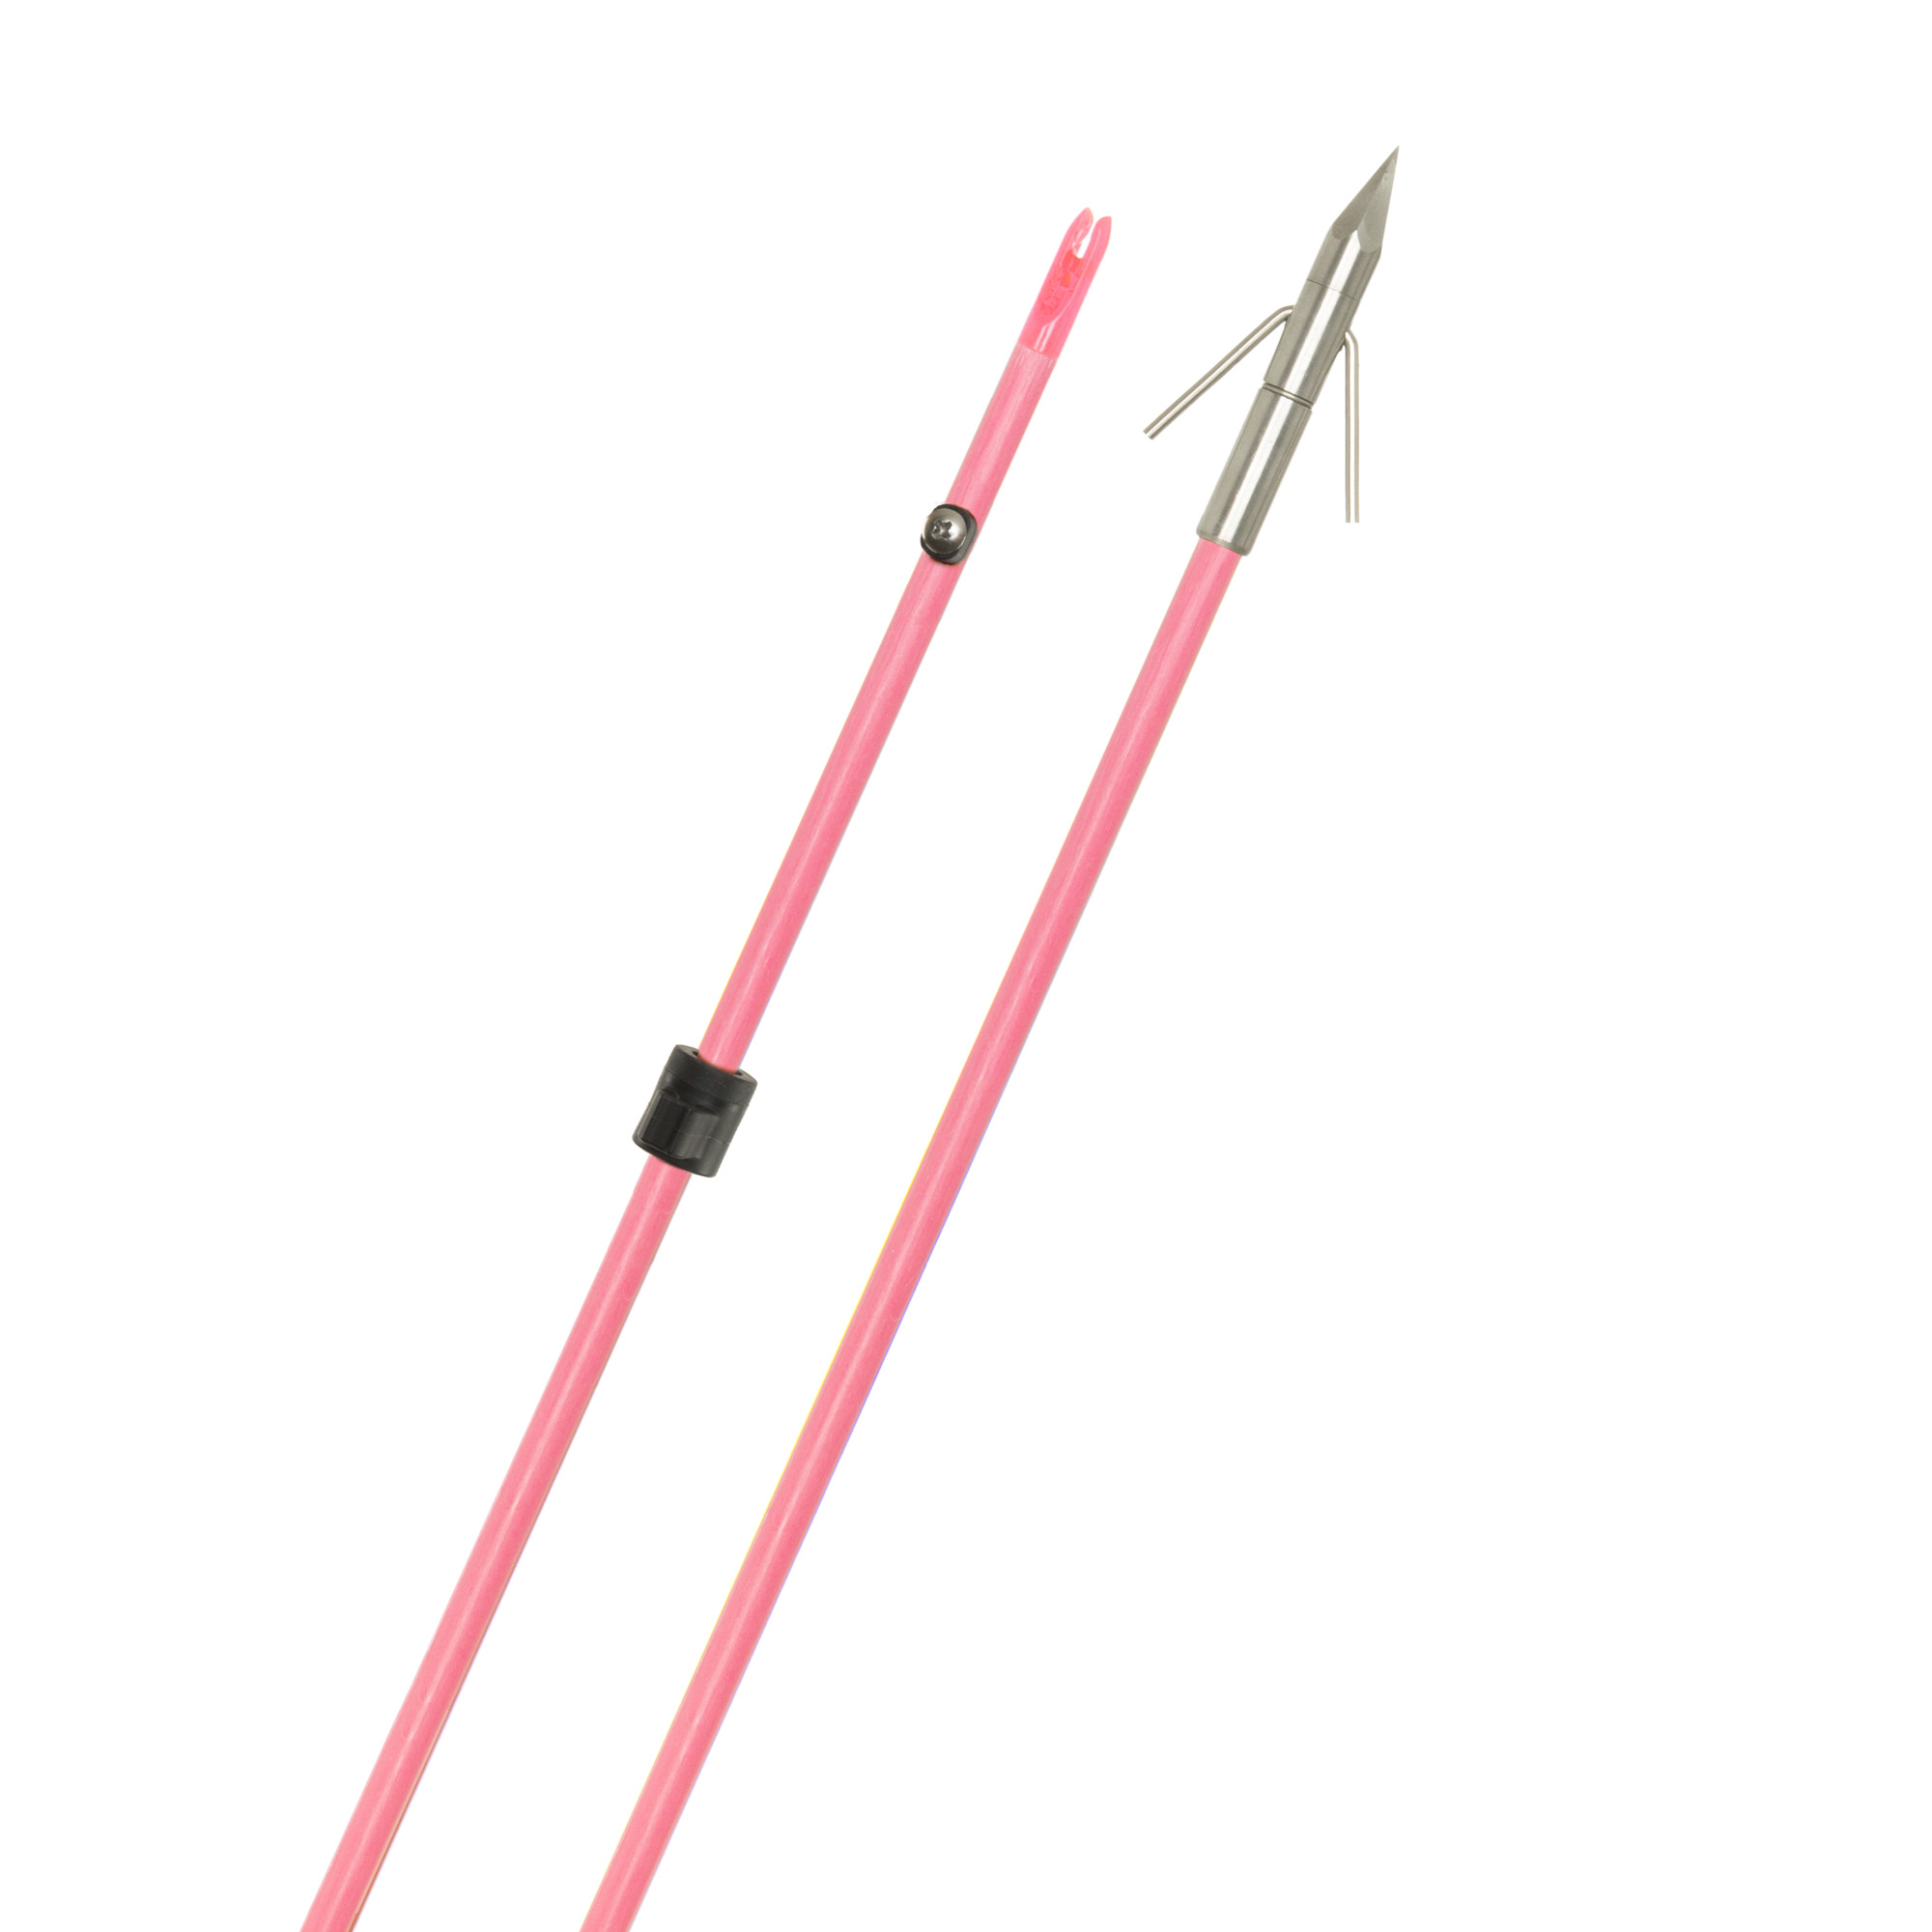 Raiderette Pro Arrow Pink w/Big Head Pro Point